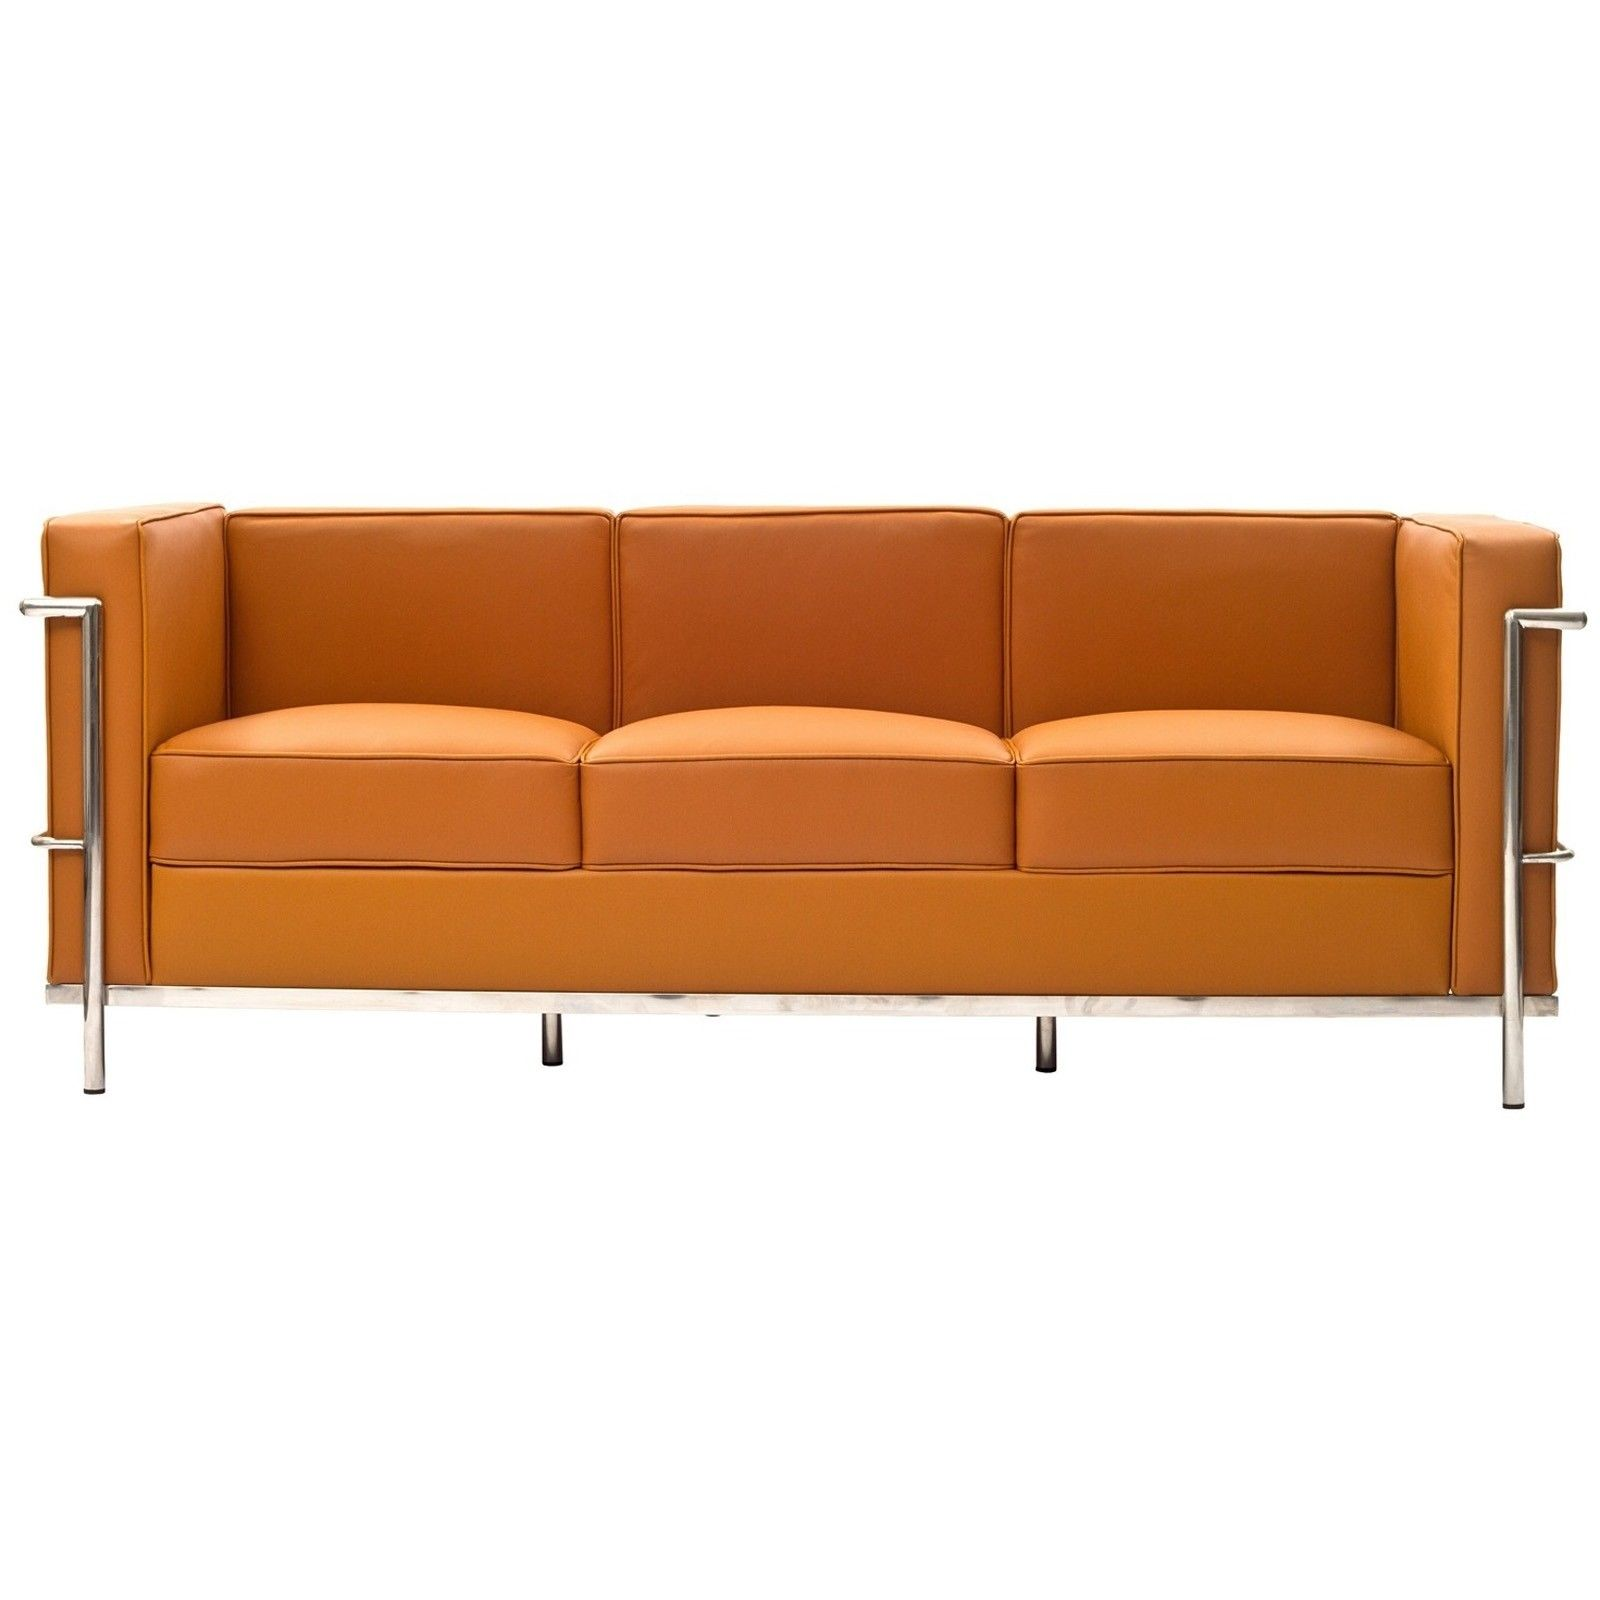 Le Corbusier Sofa Just To Remember That We Have A Tan Sofa So The Color Palette Should Match That Genuine Leather Sofa Furniture Petite Sofa